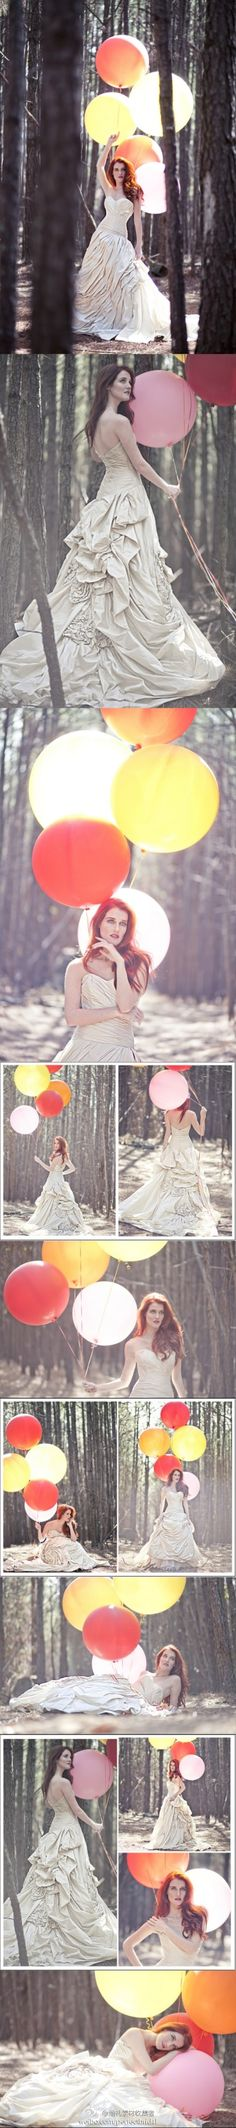 Www.bildaballoon.com designer of enormous balloons We LOVE this  love the balloon. and the dress.   Bride pictures with balloons,